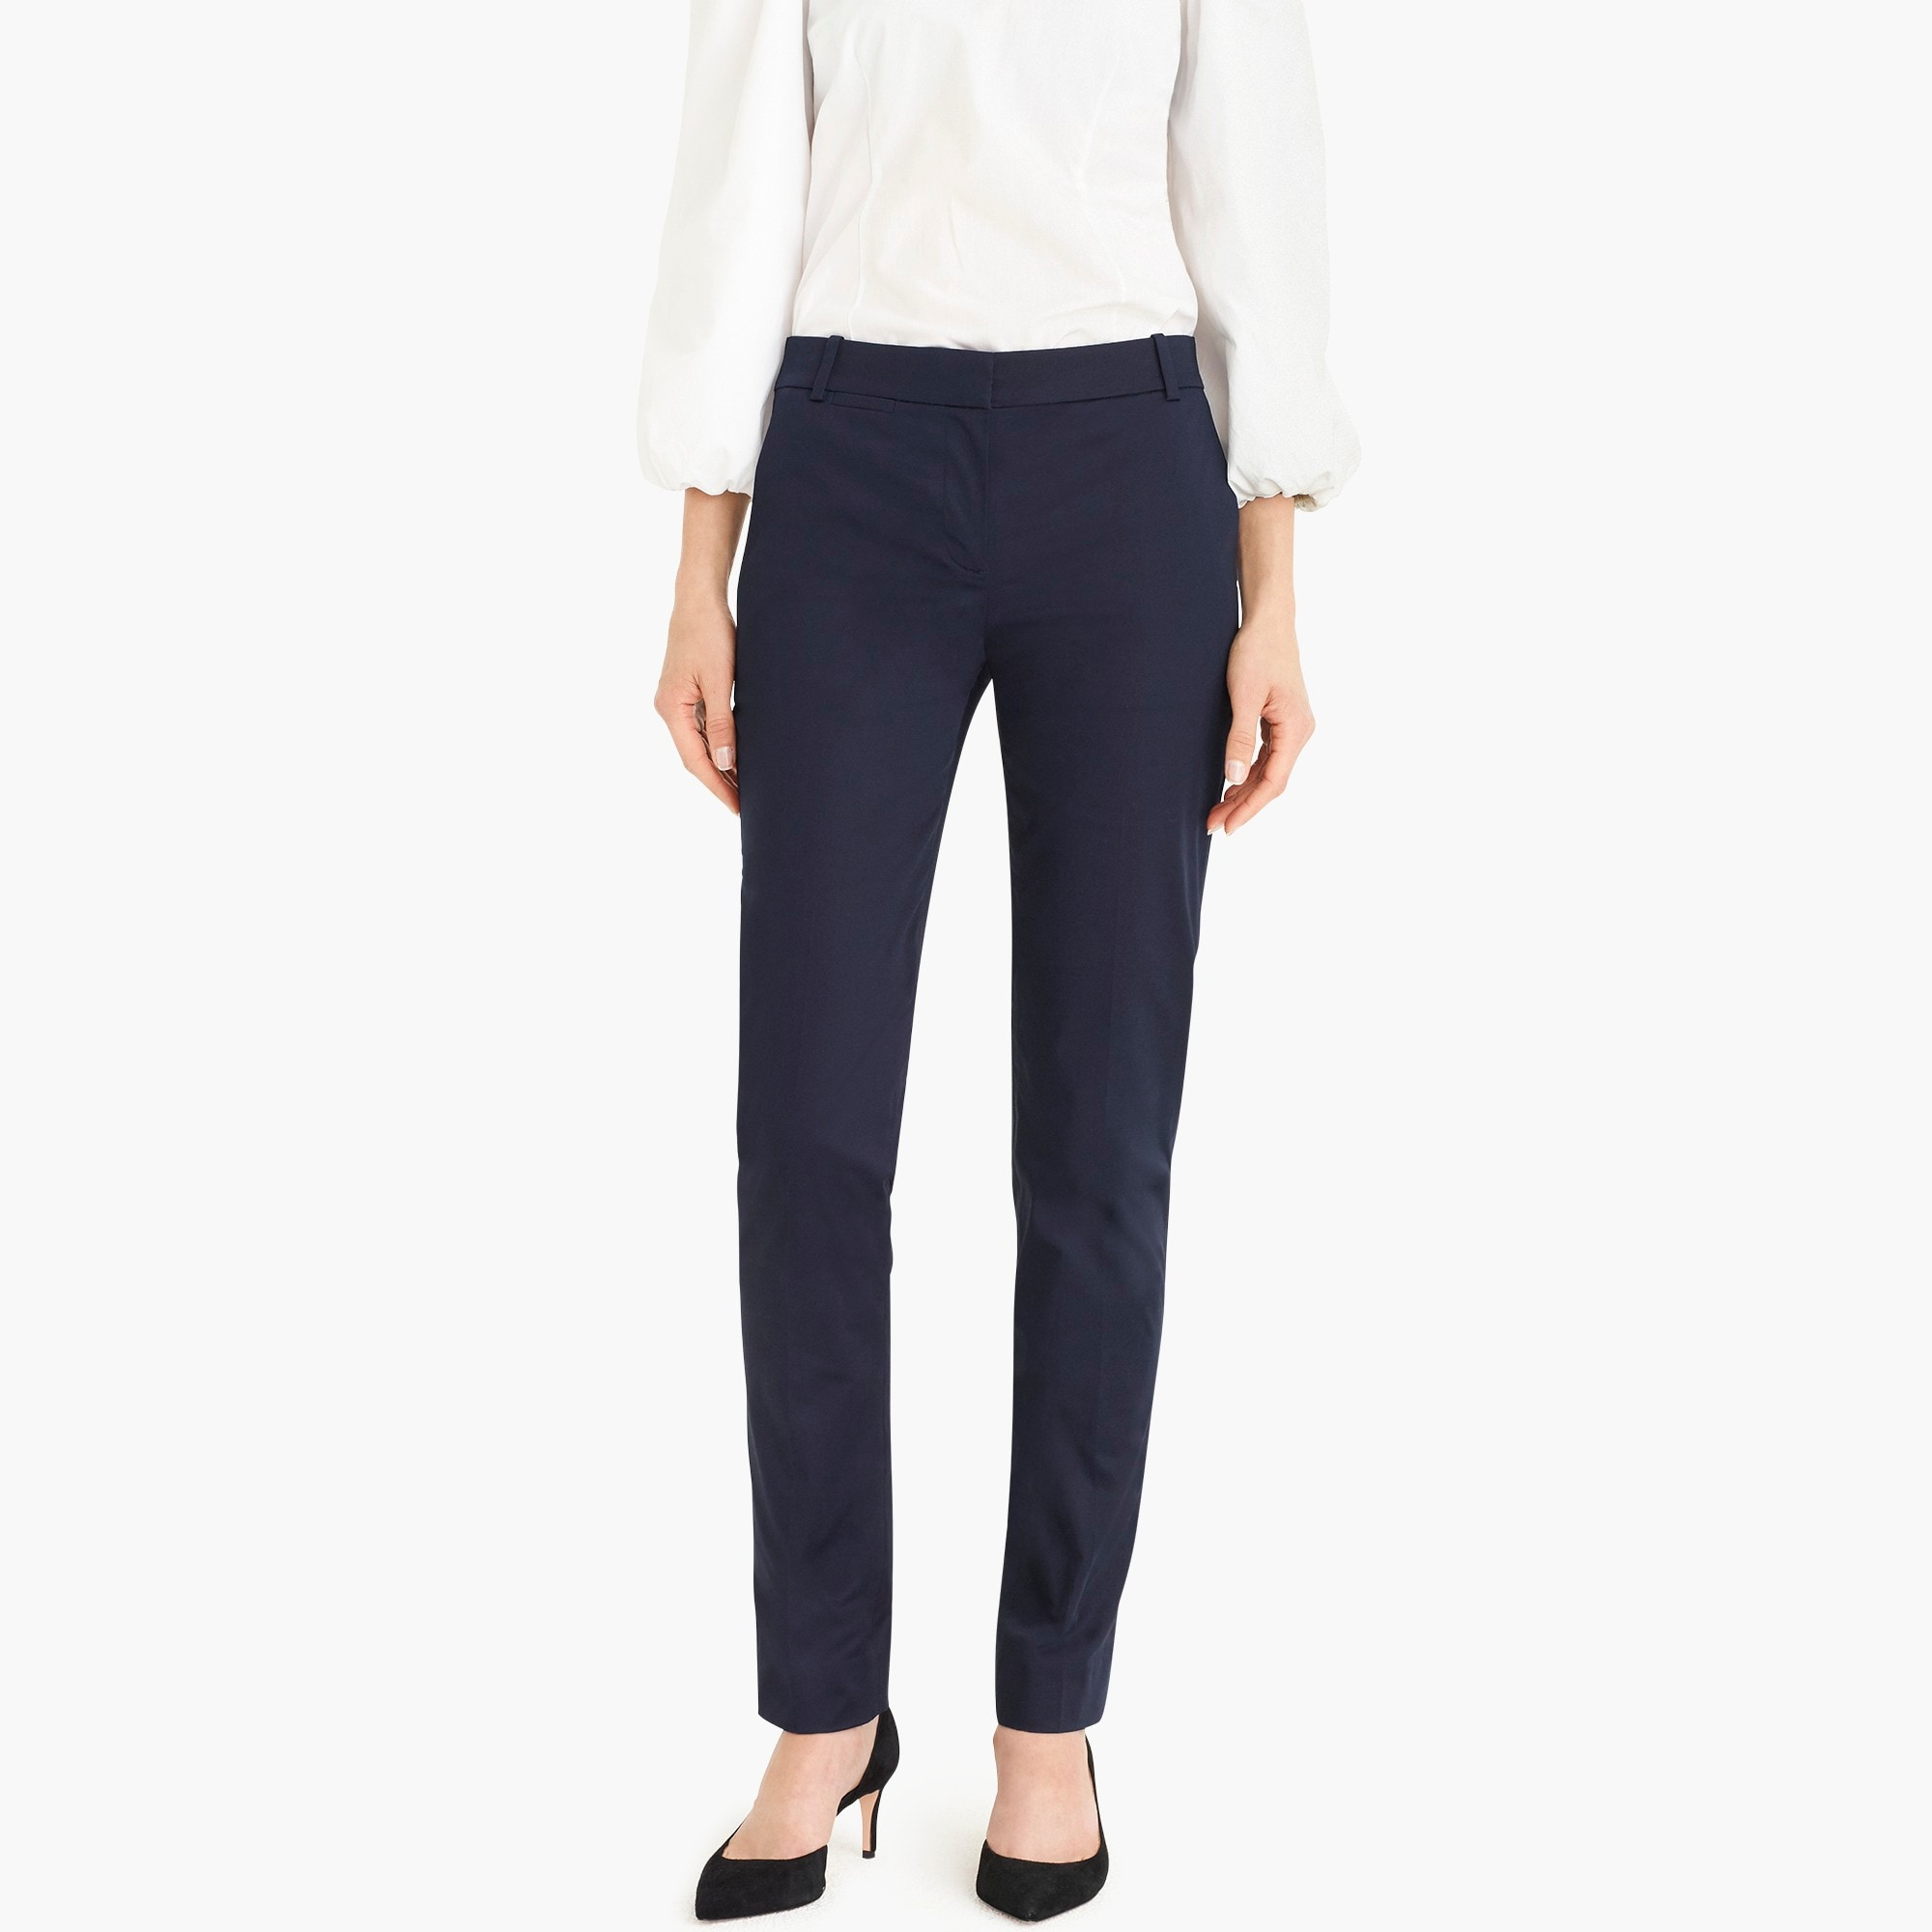 Petite full-length stretch sateen pant